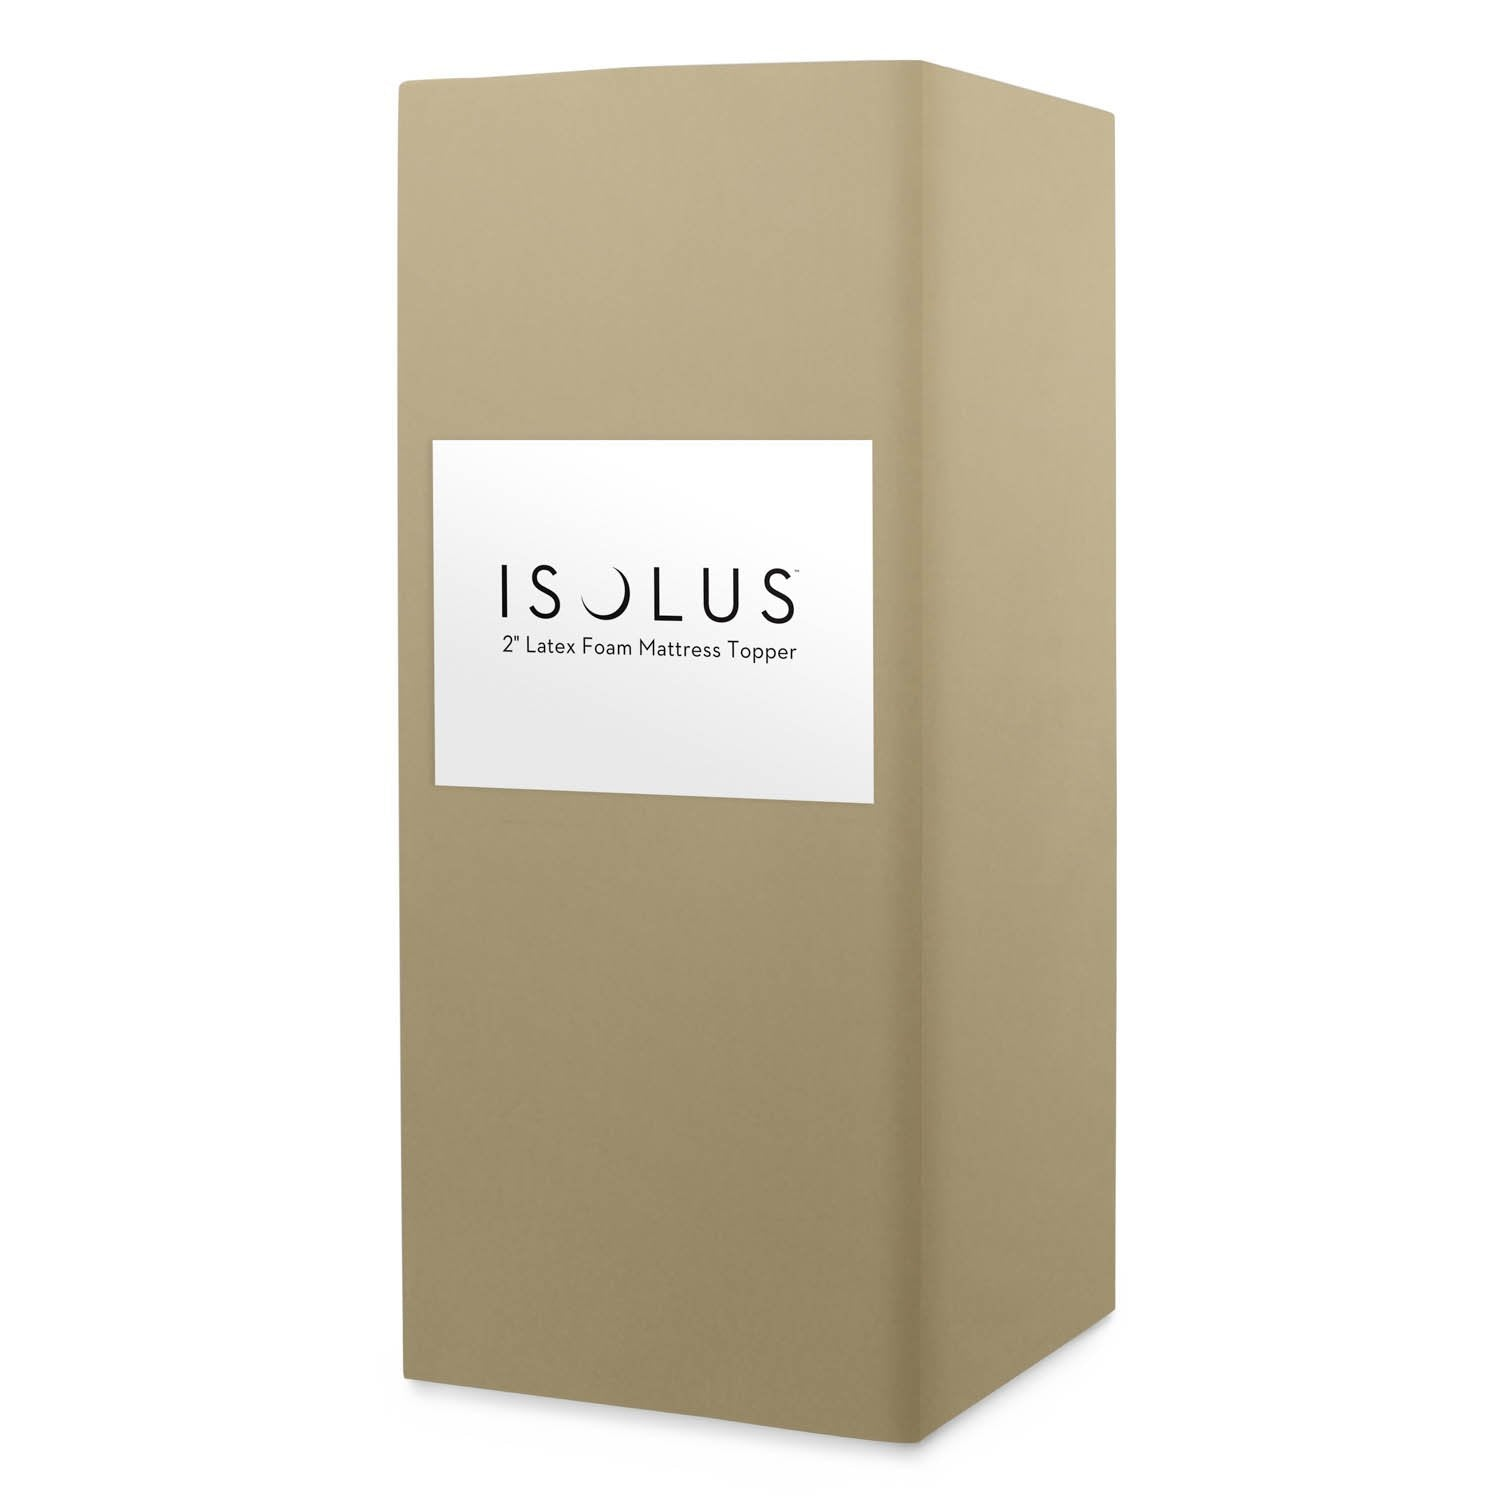 tuft lucid mattresses mattress needle lovely certipurus are of inch toxic foam ventilated latex and